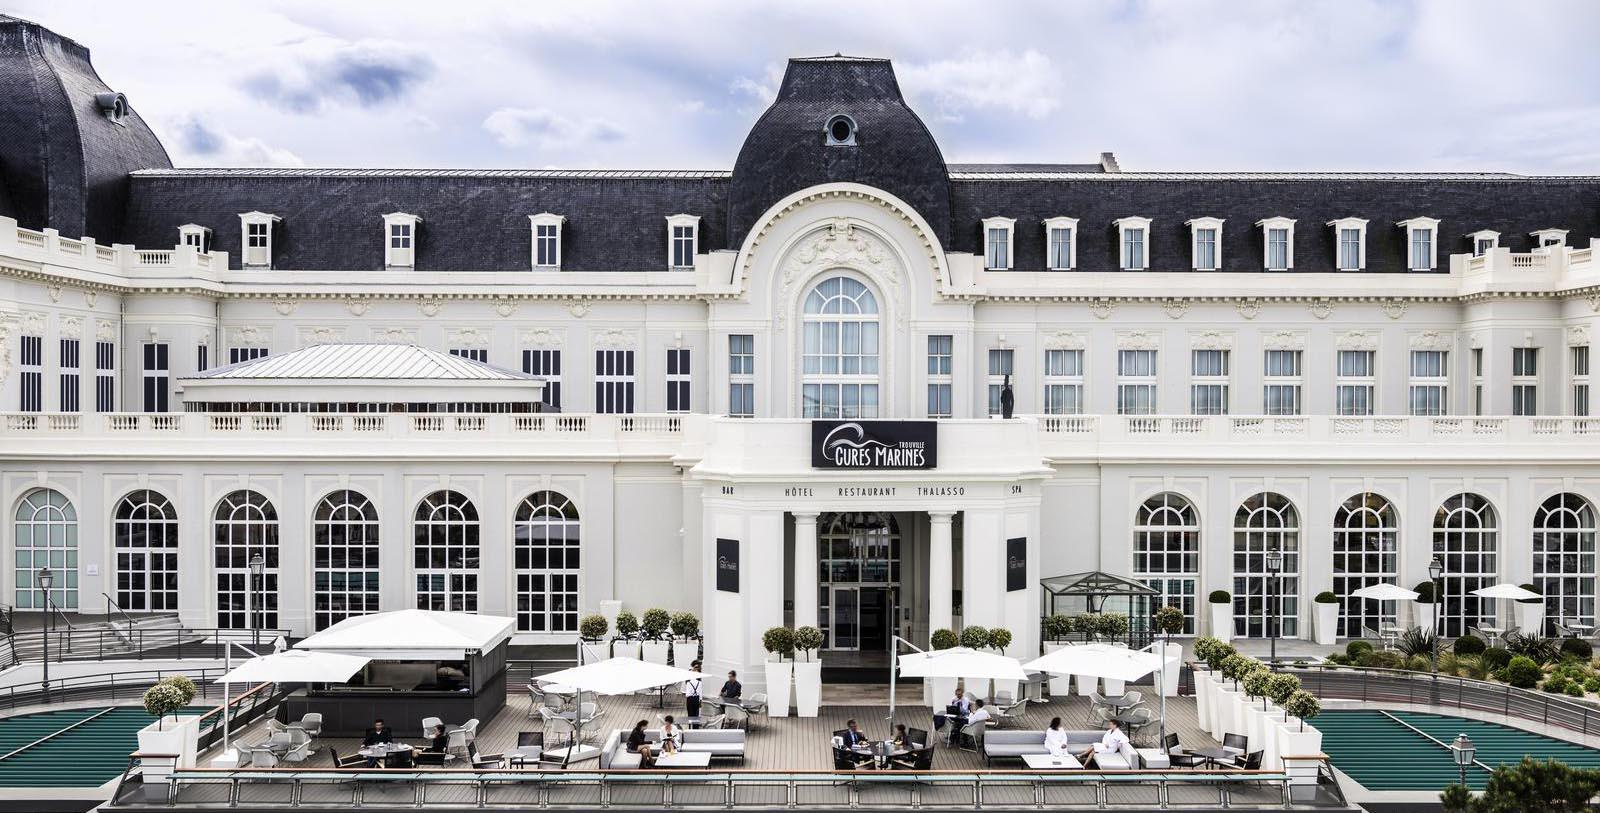 Daytime exterior at Cures Marines Trouville Hôtel Thalasso & Spa-MGallery by Sofitel at Trouville-sur-Mer, France.